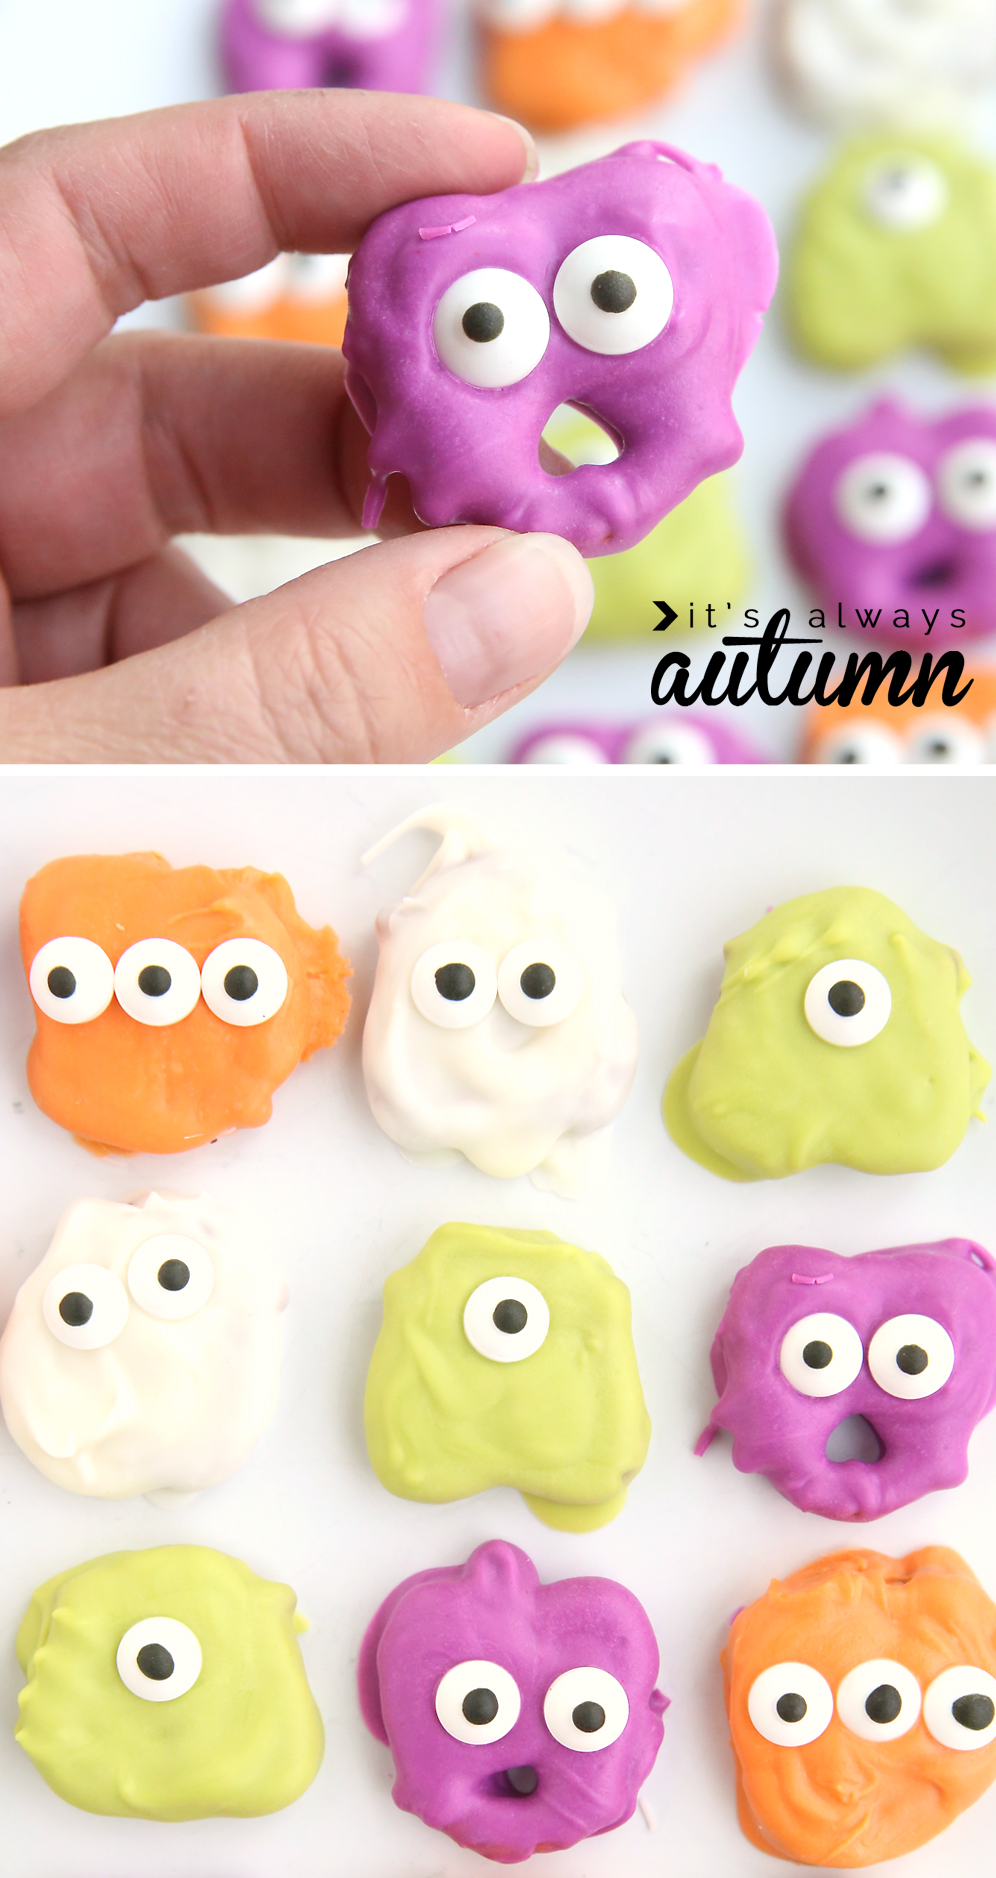 hand holding pretzel monster; green, orange, white, and purple covered pretzels with candy eyes